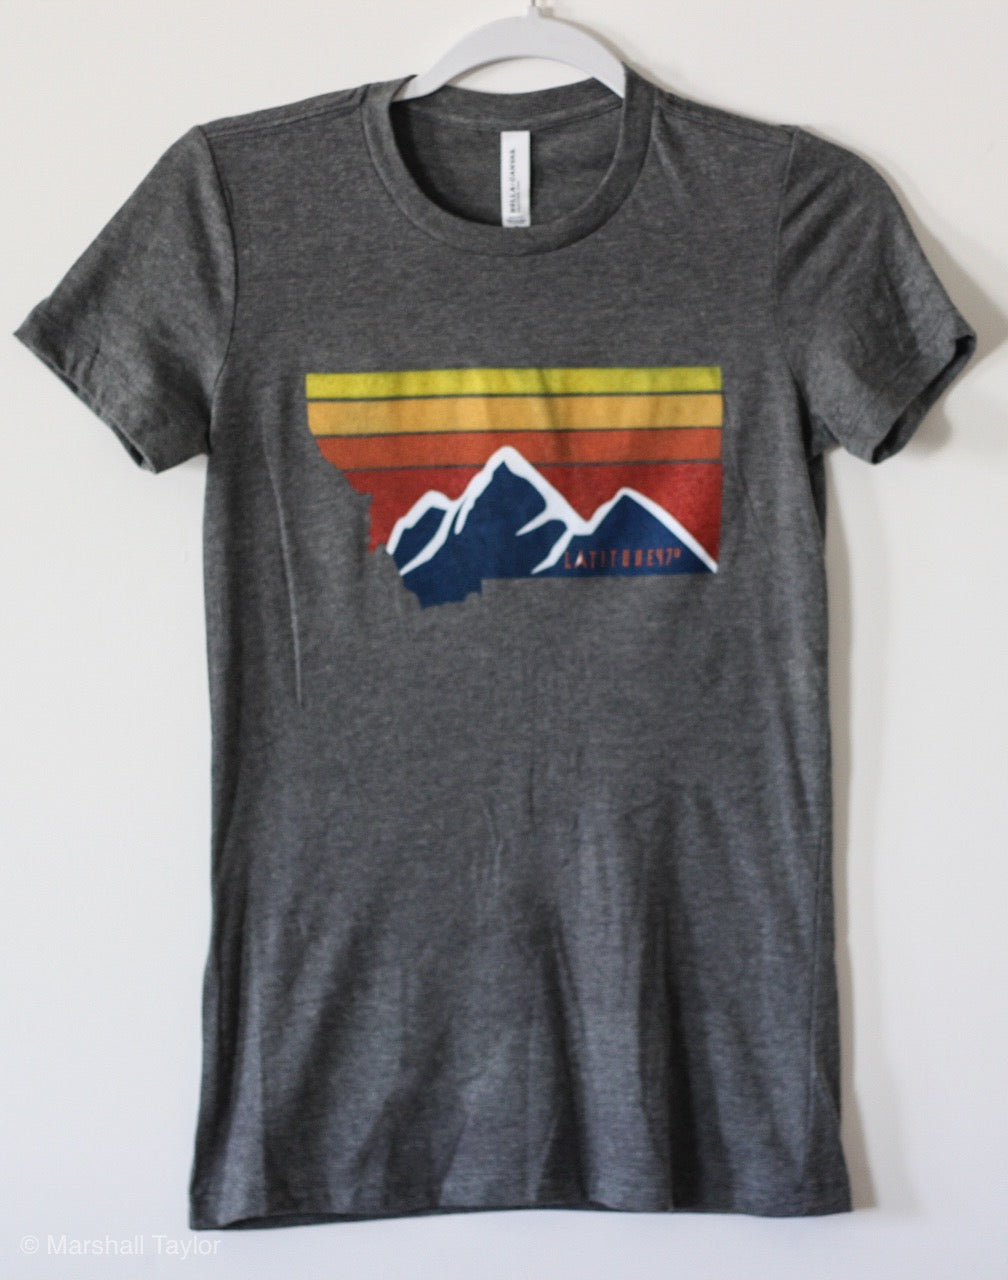 Authentic Latitude 47° Women's Tee